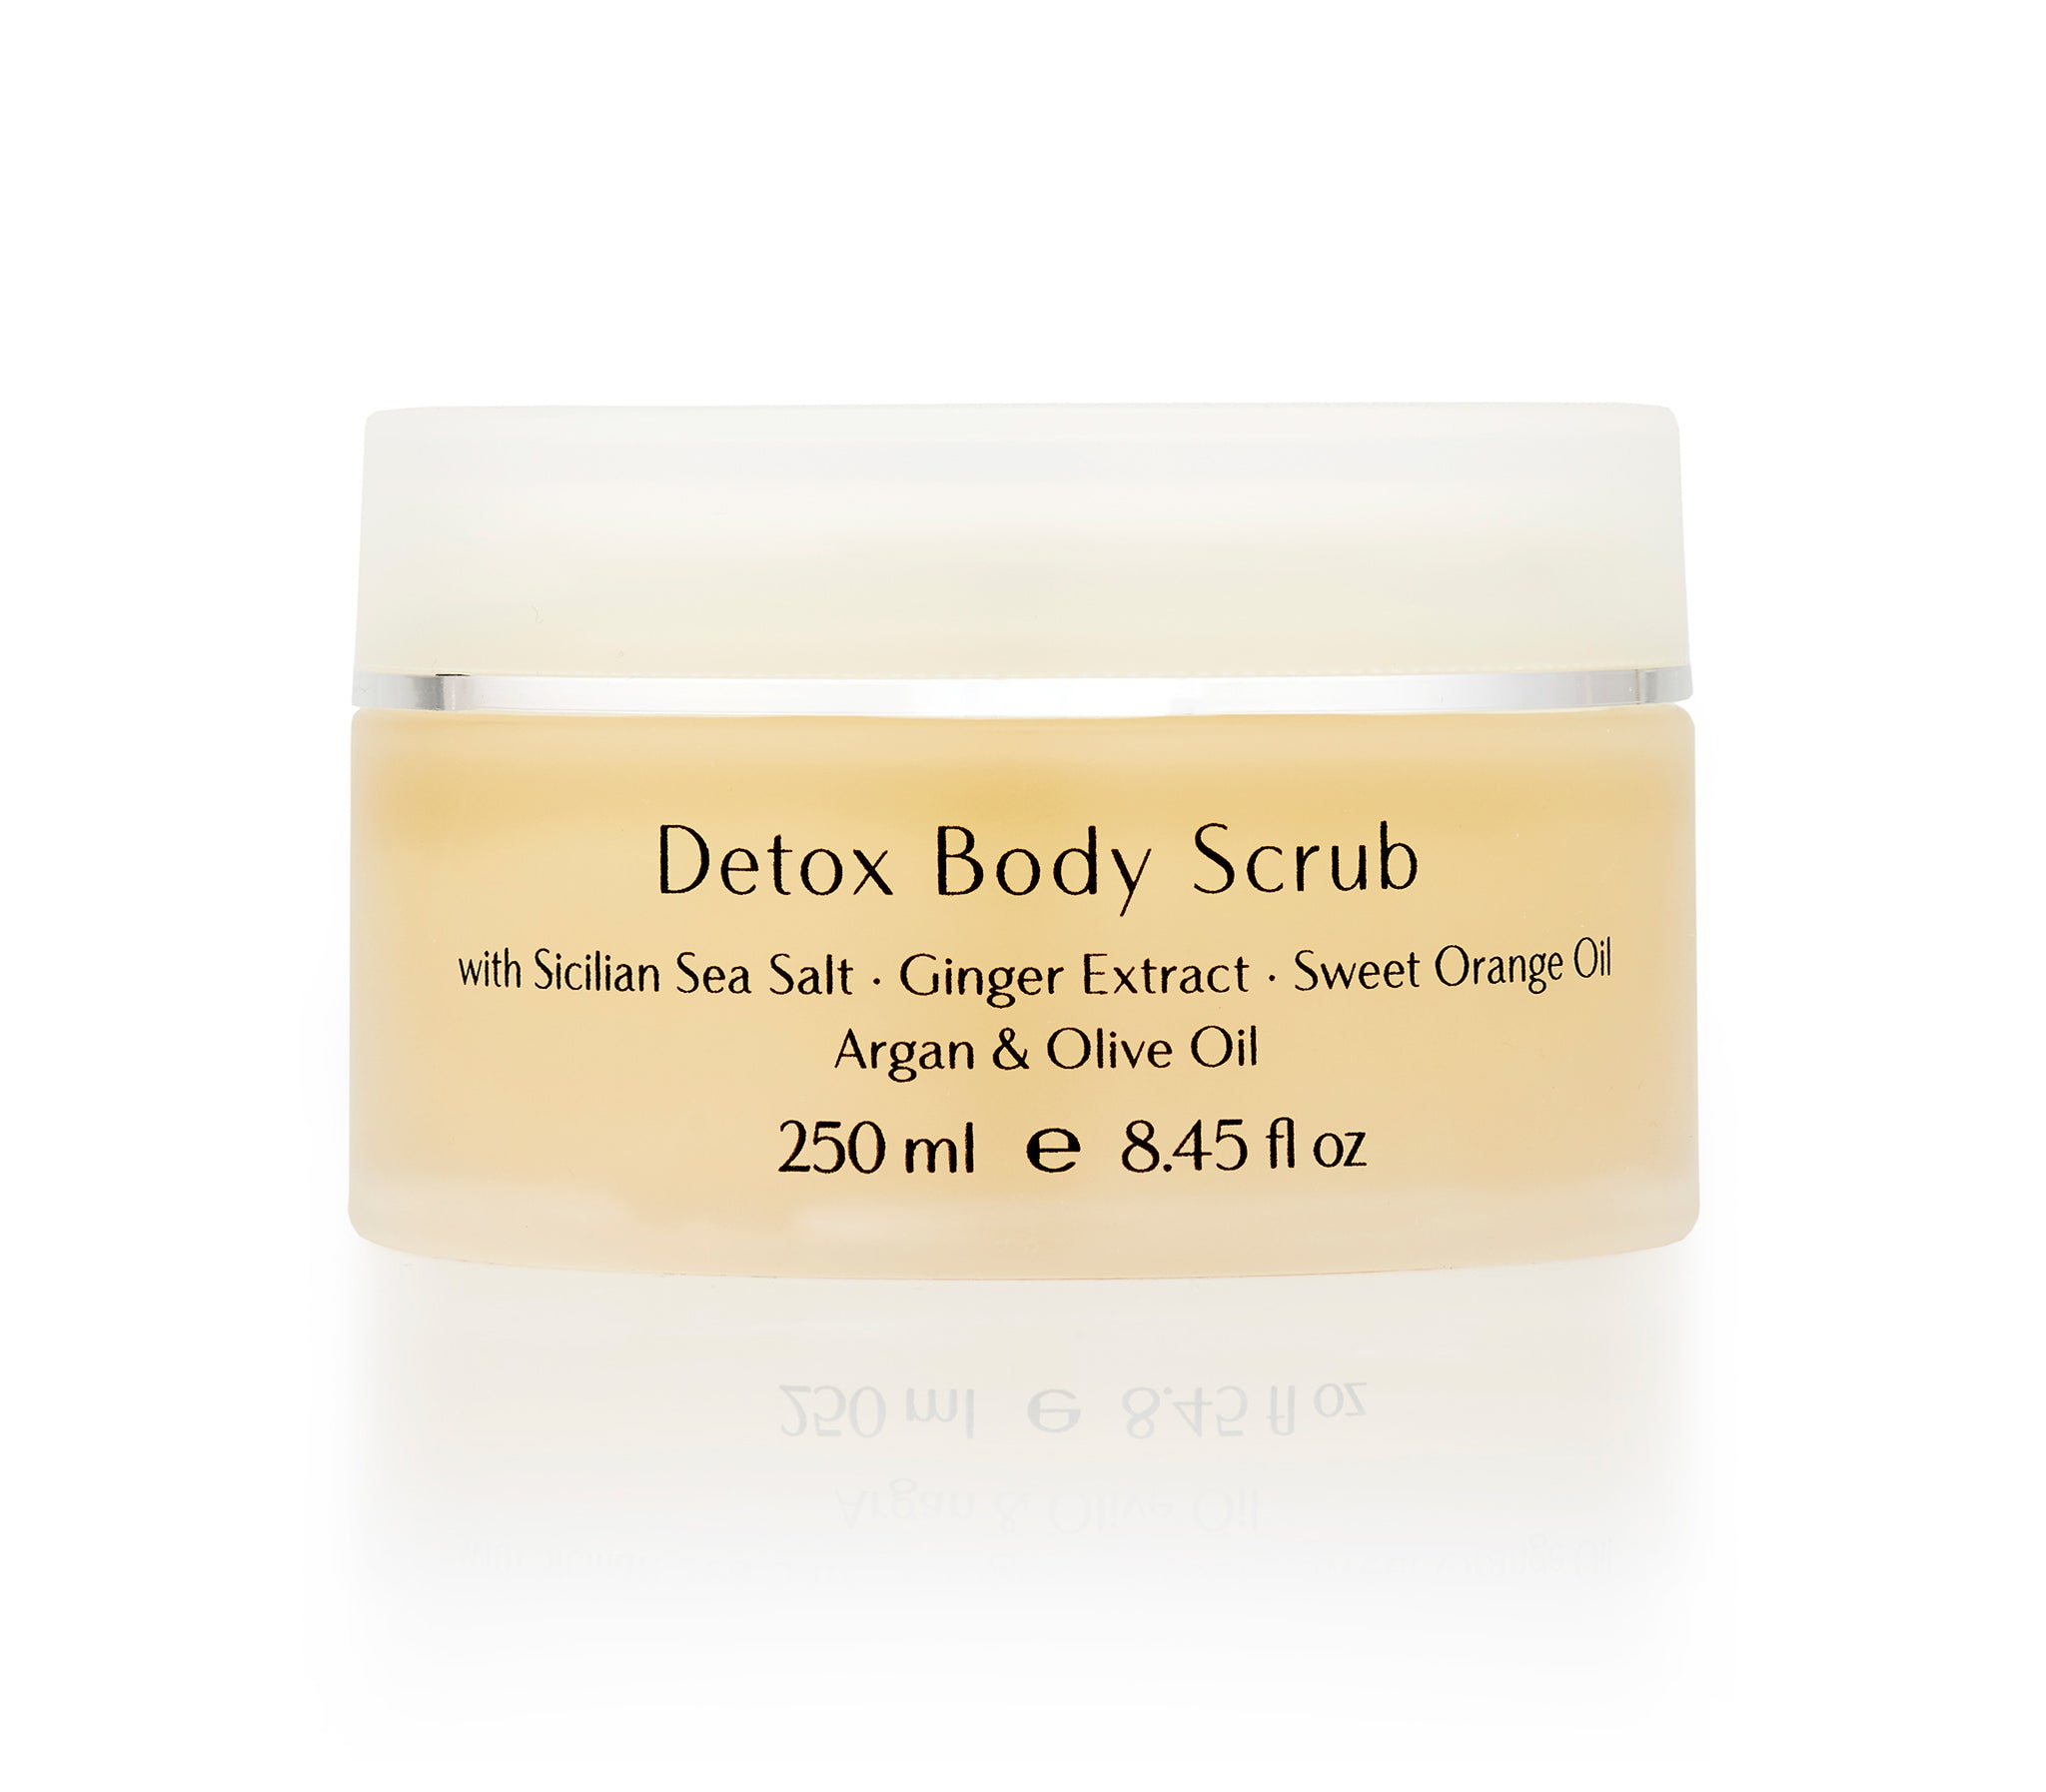 Detox Body Scrub